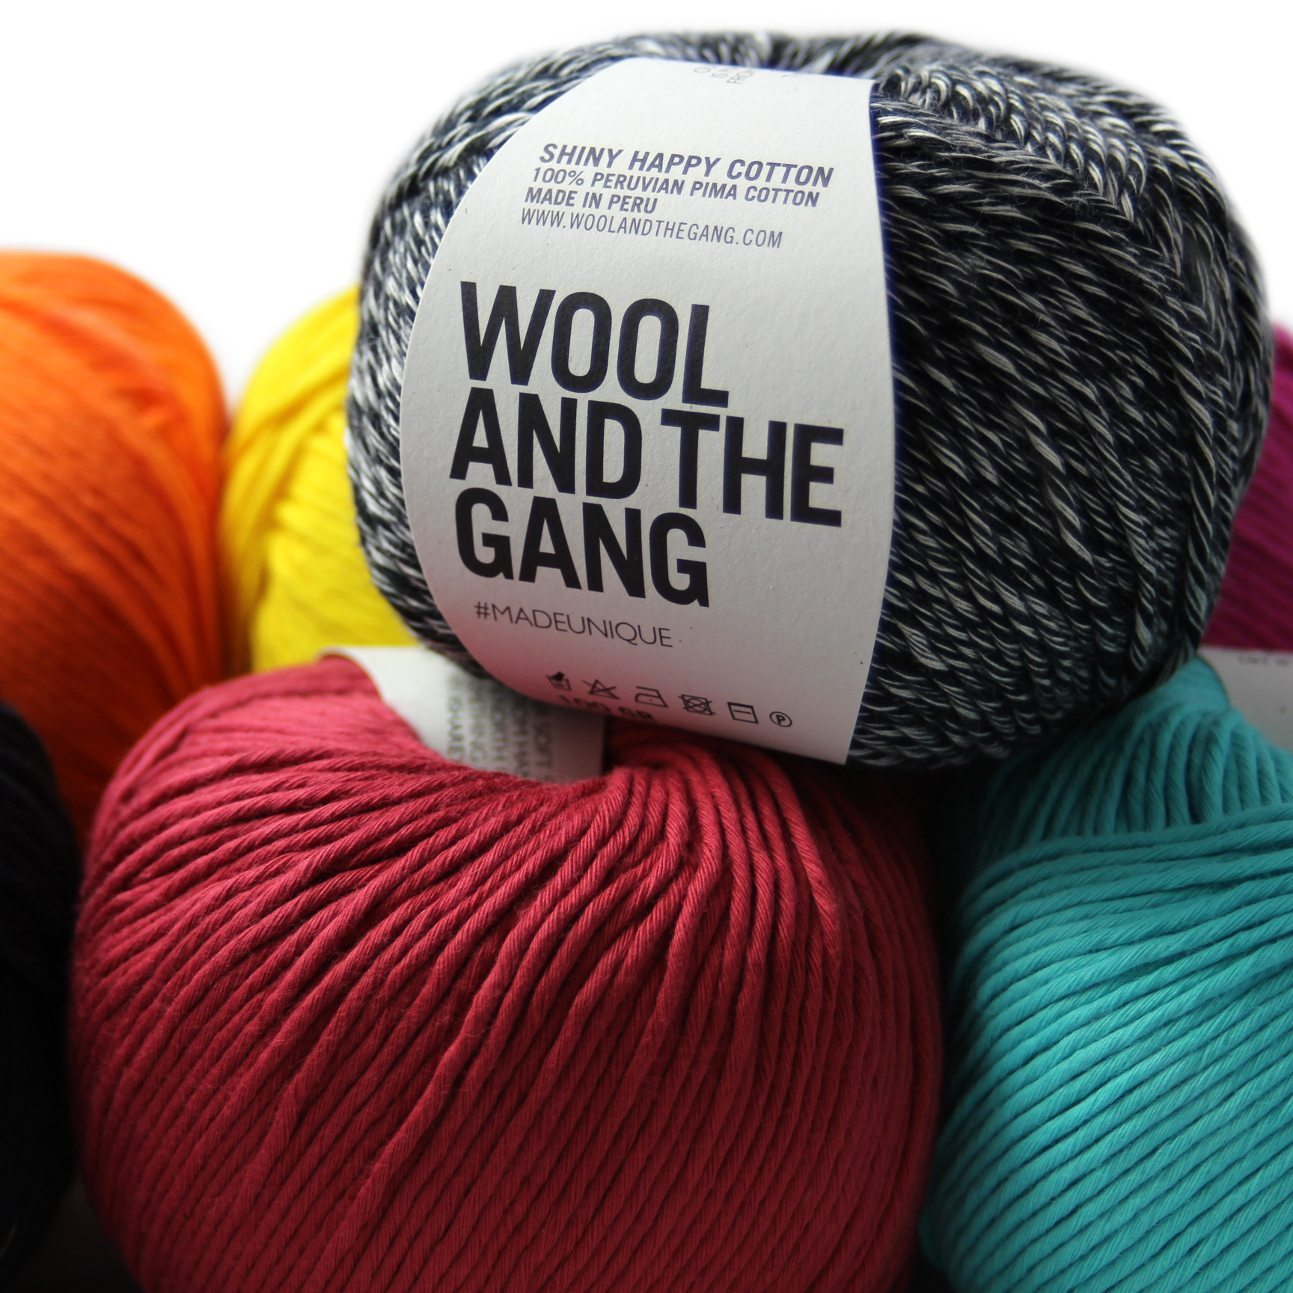 Wool and the Gang , Shiny Happy Cotton, Cotton